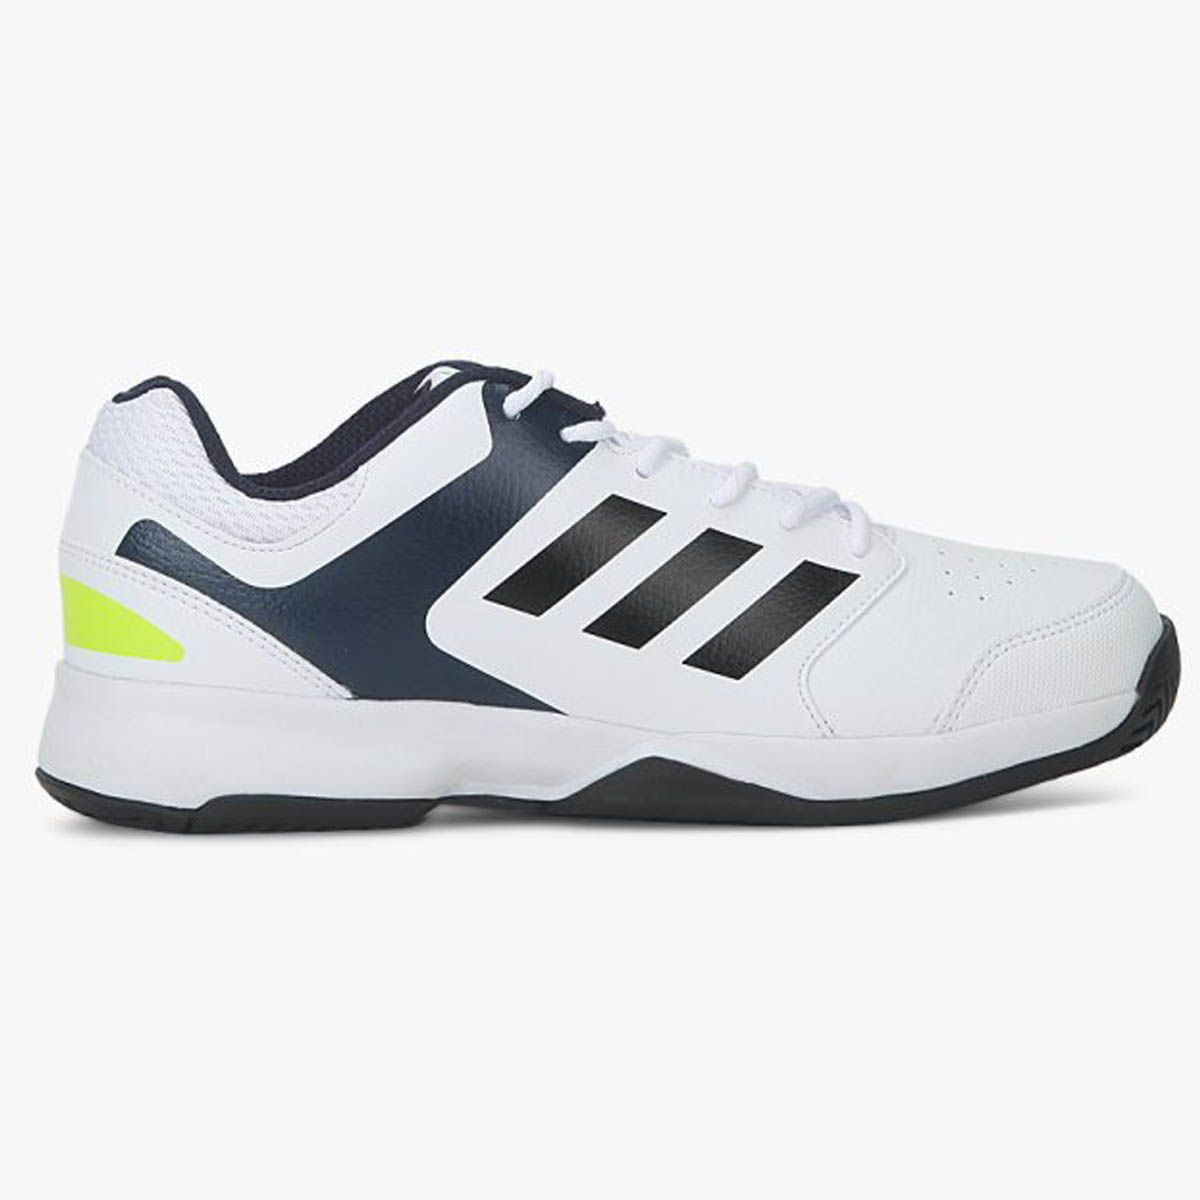 Buy Adidas Steadfast Men s Tennis Shoes Online in India 5cd4d6d35a15